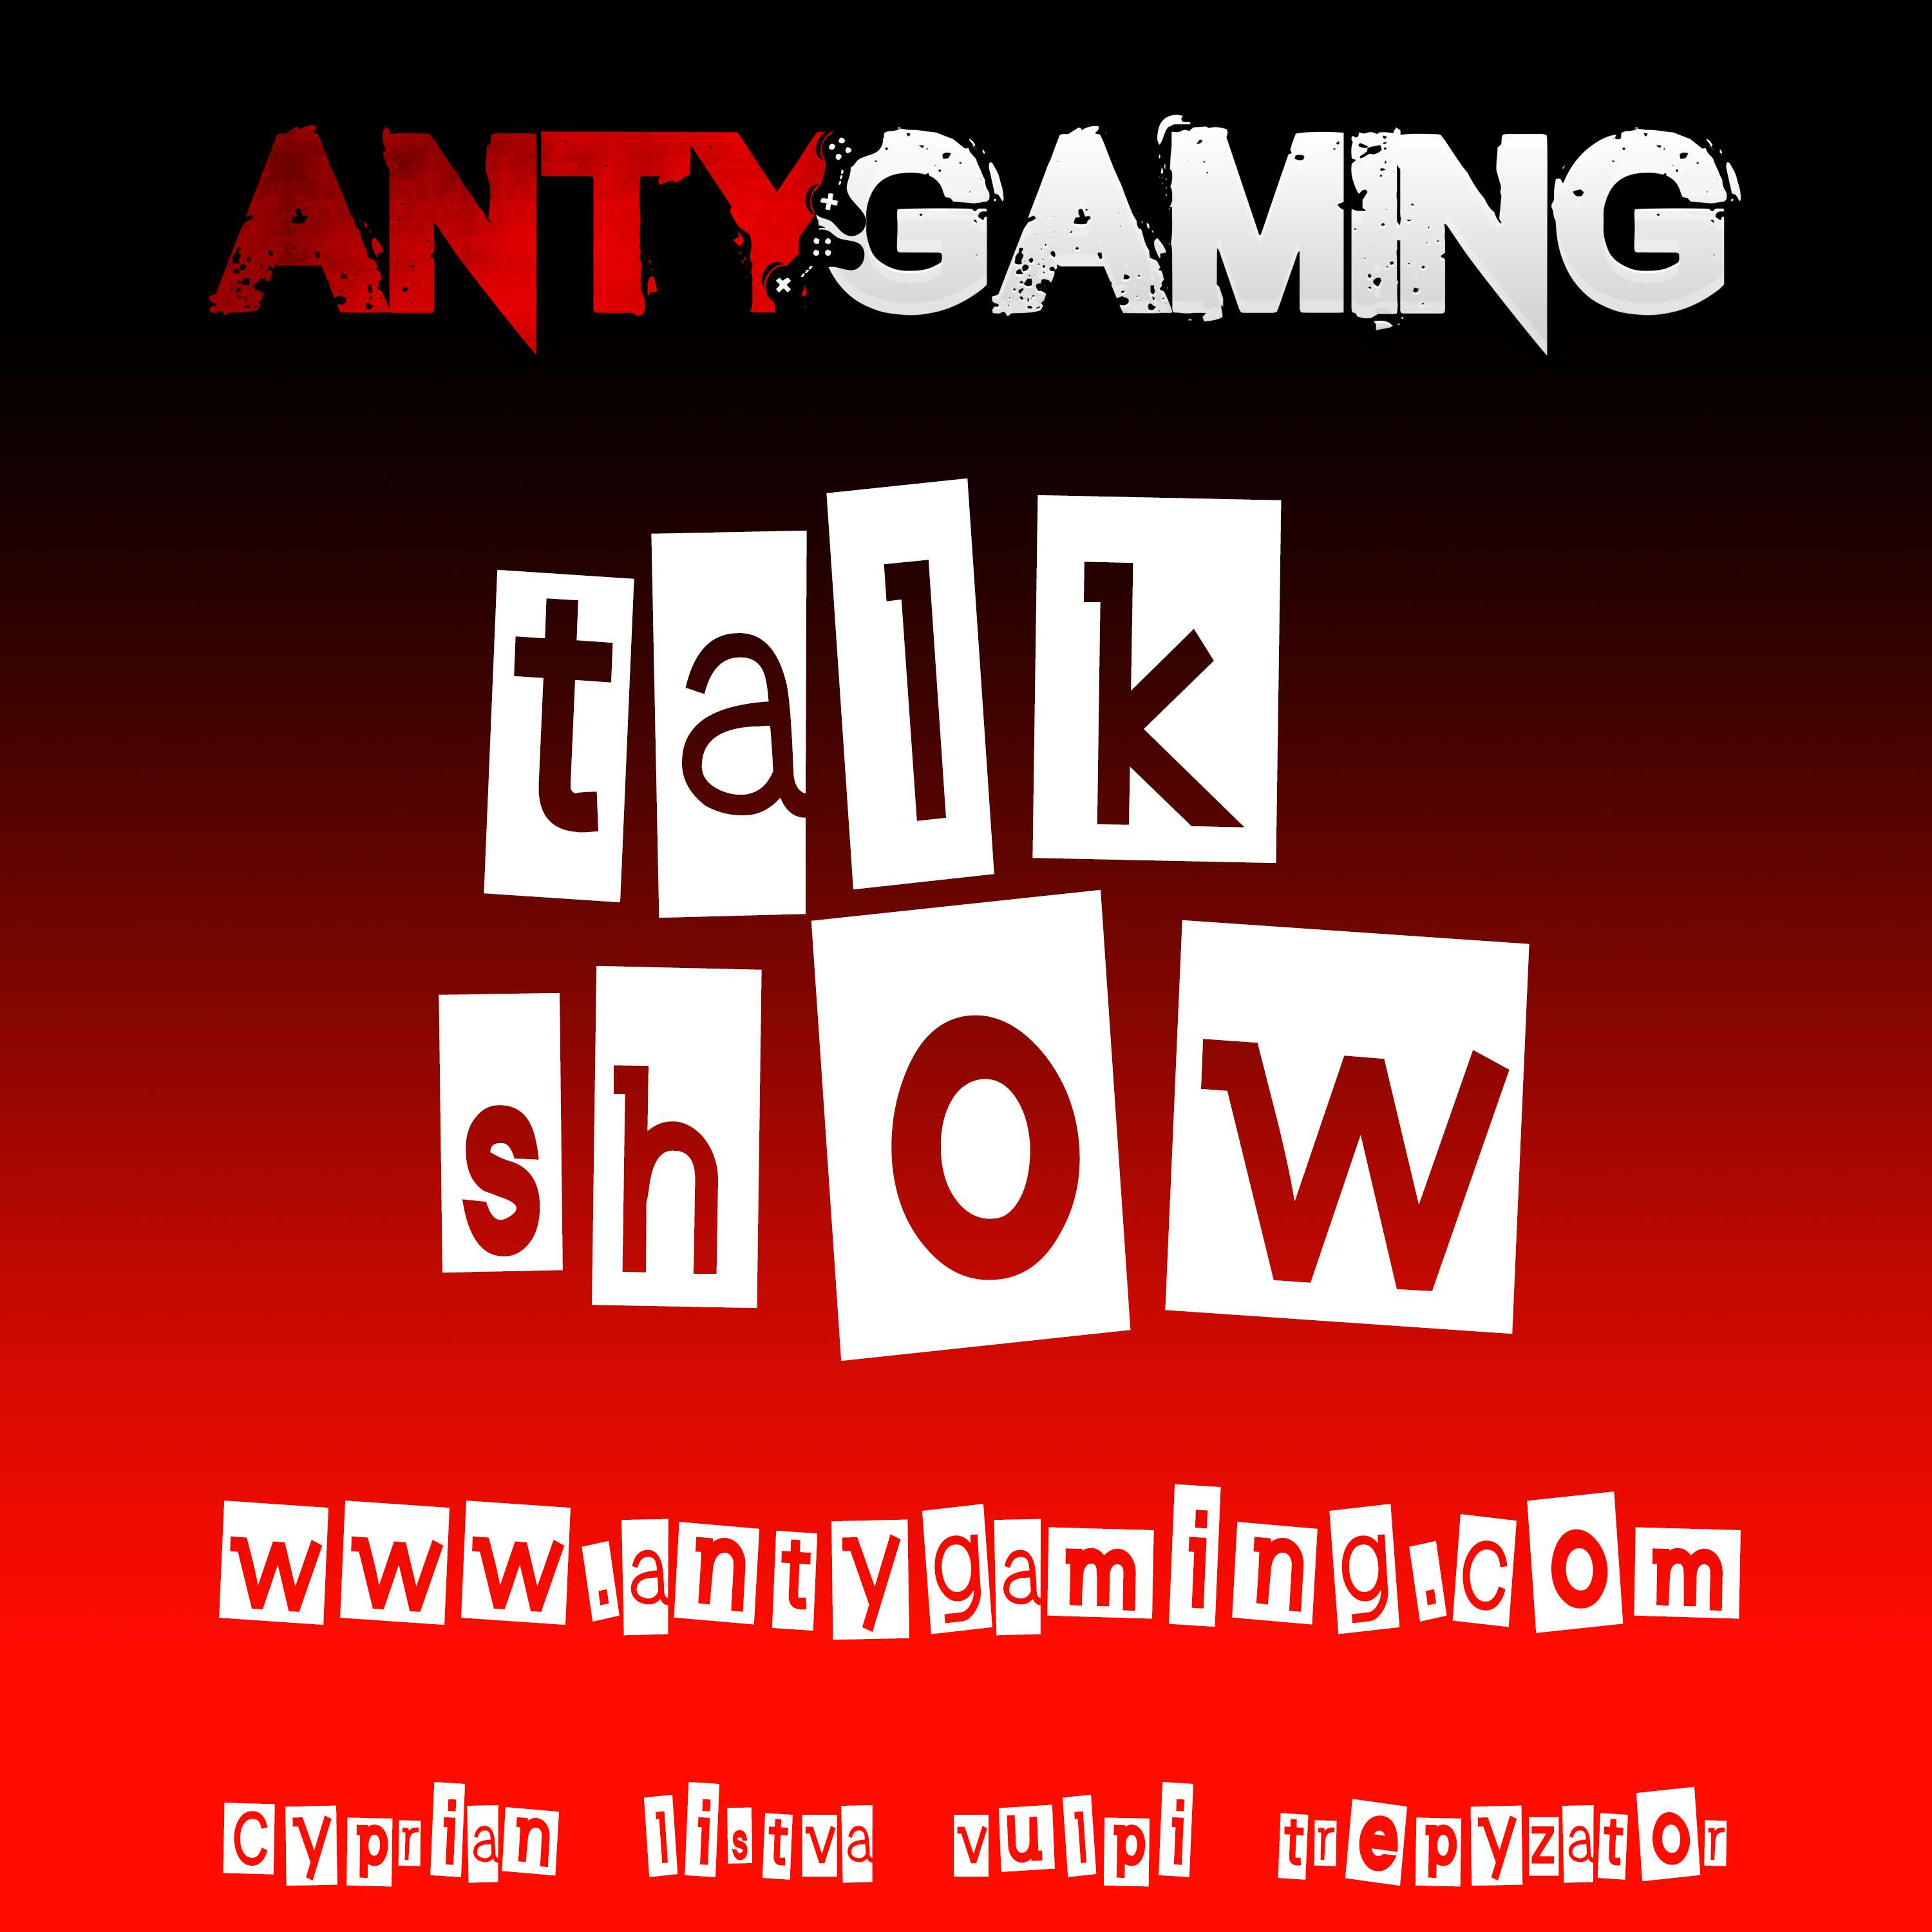 AntyGaming Talk Show